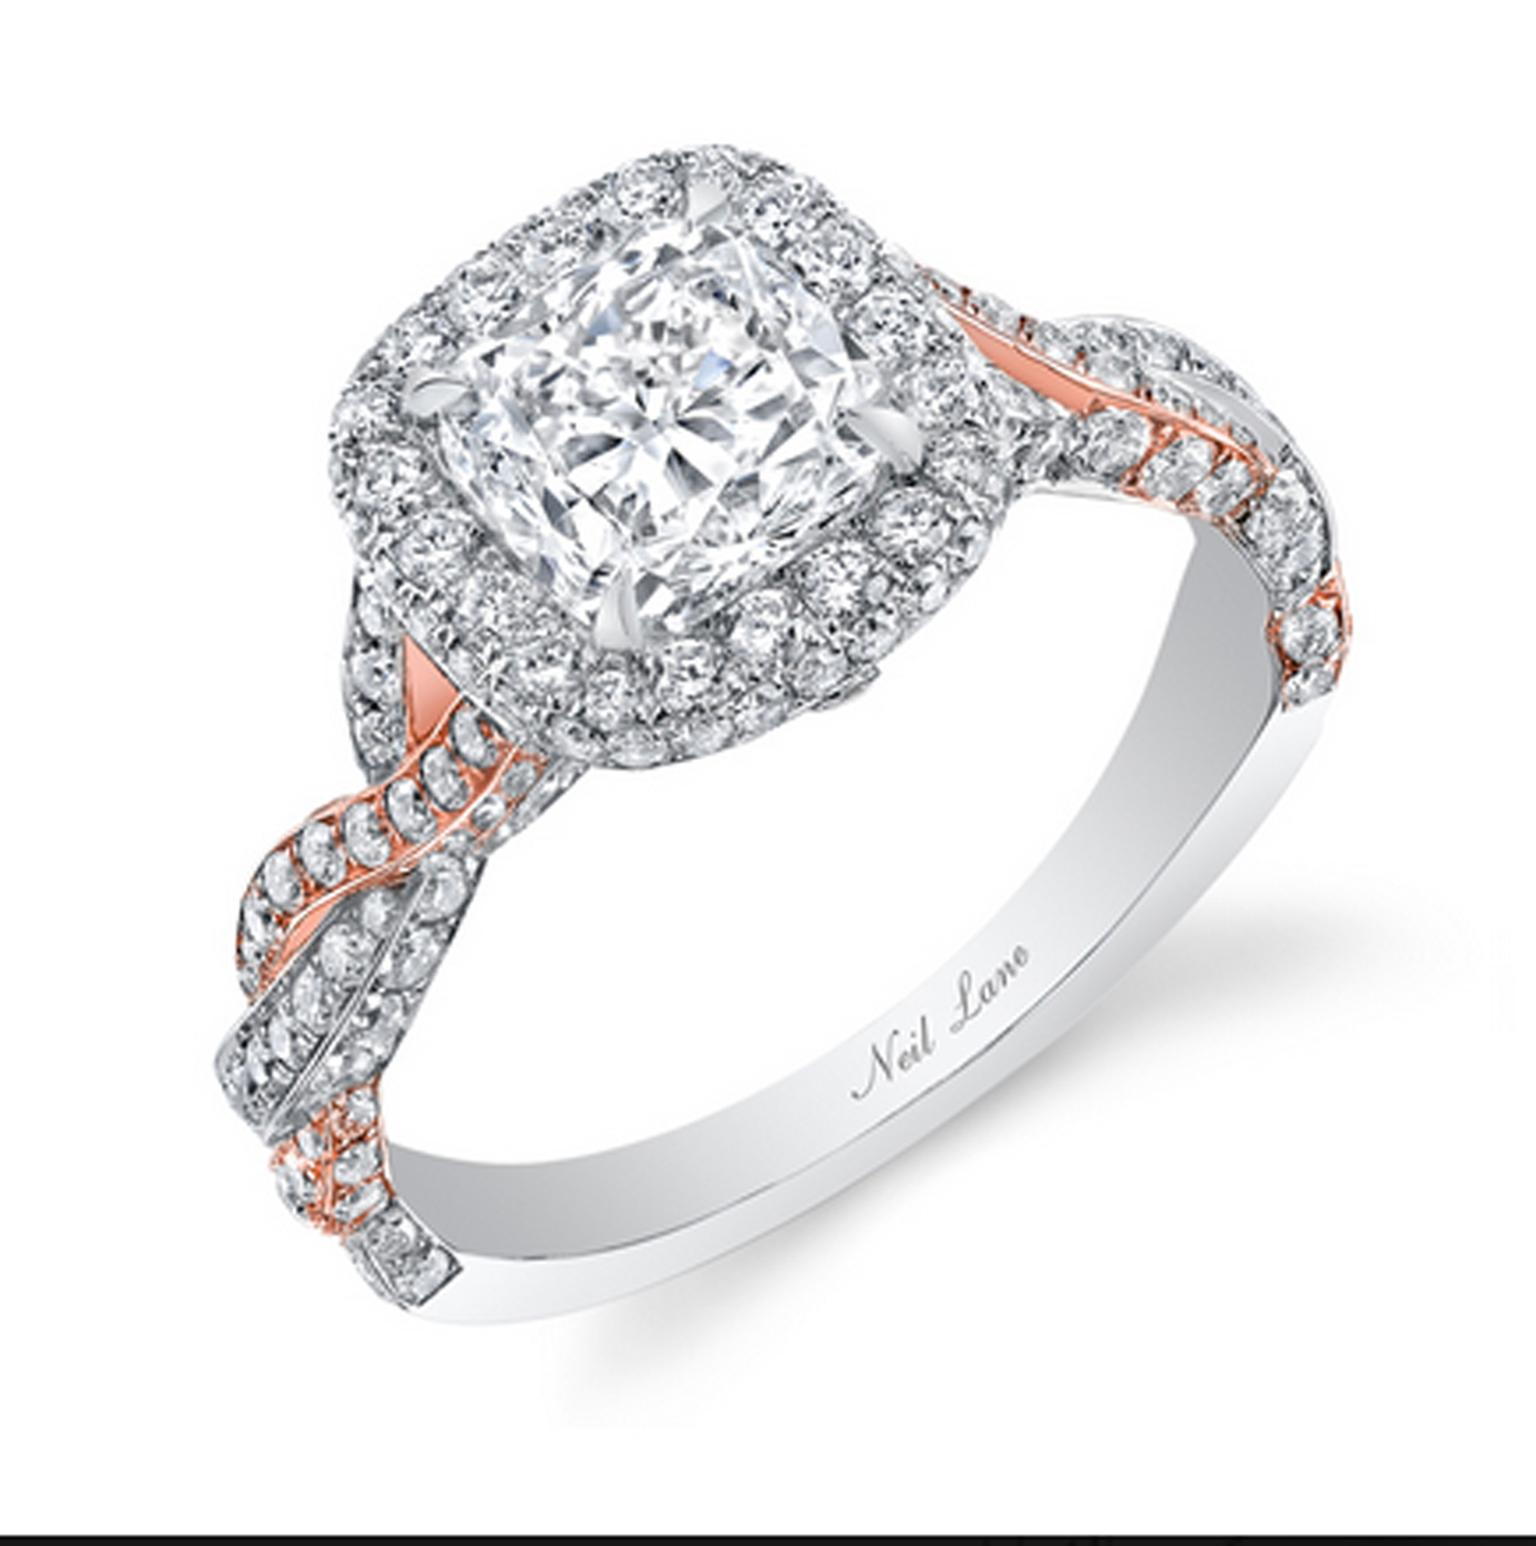 The Neil Lane Romantic Entwined Ring